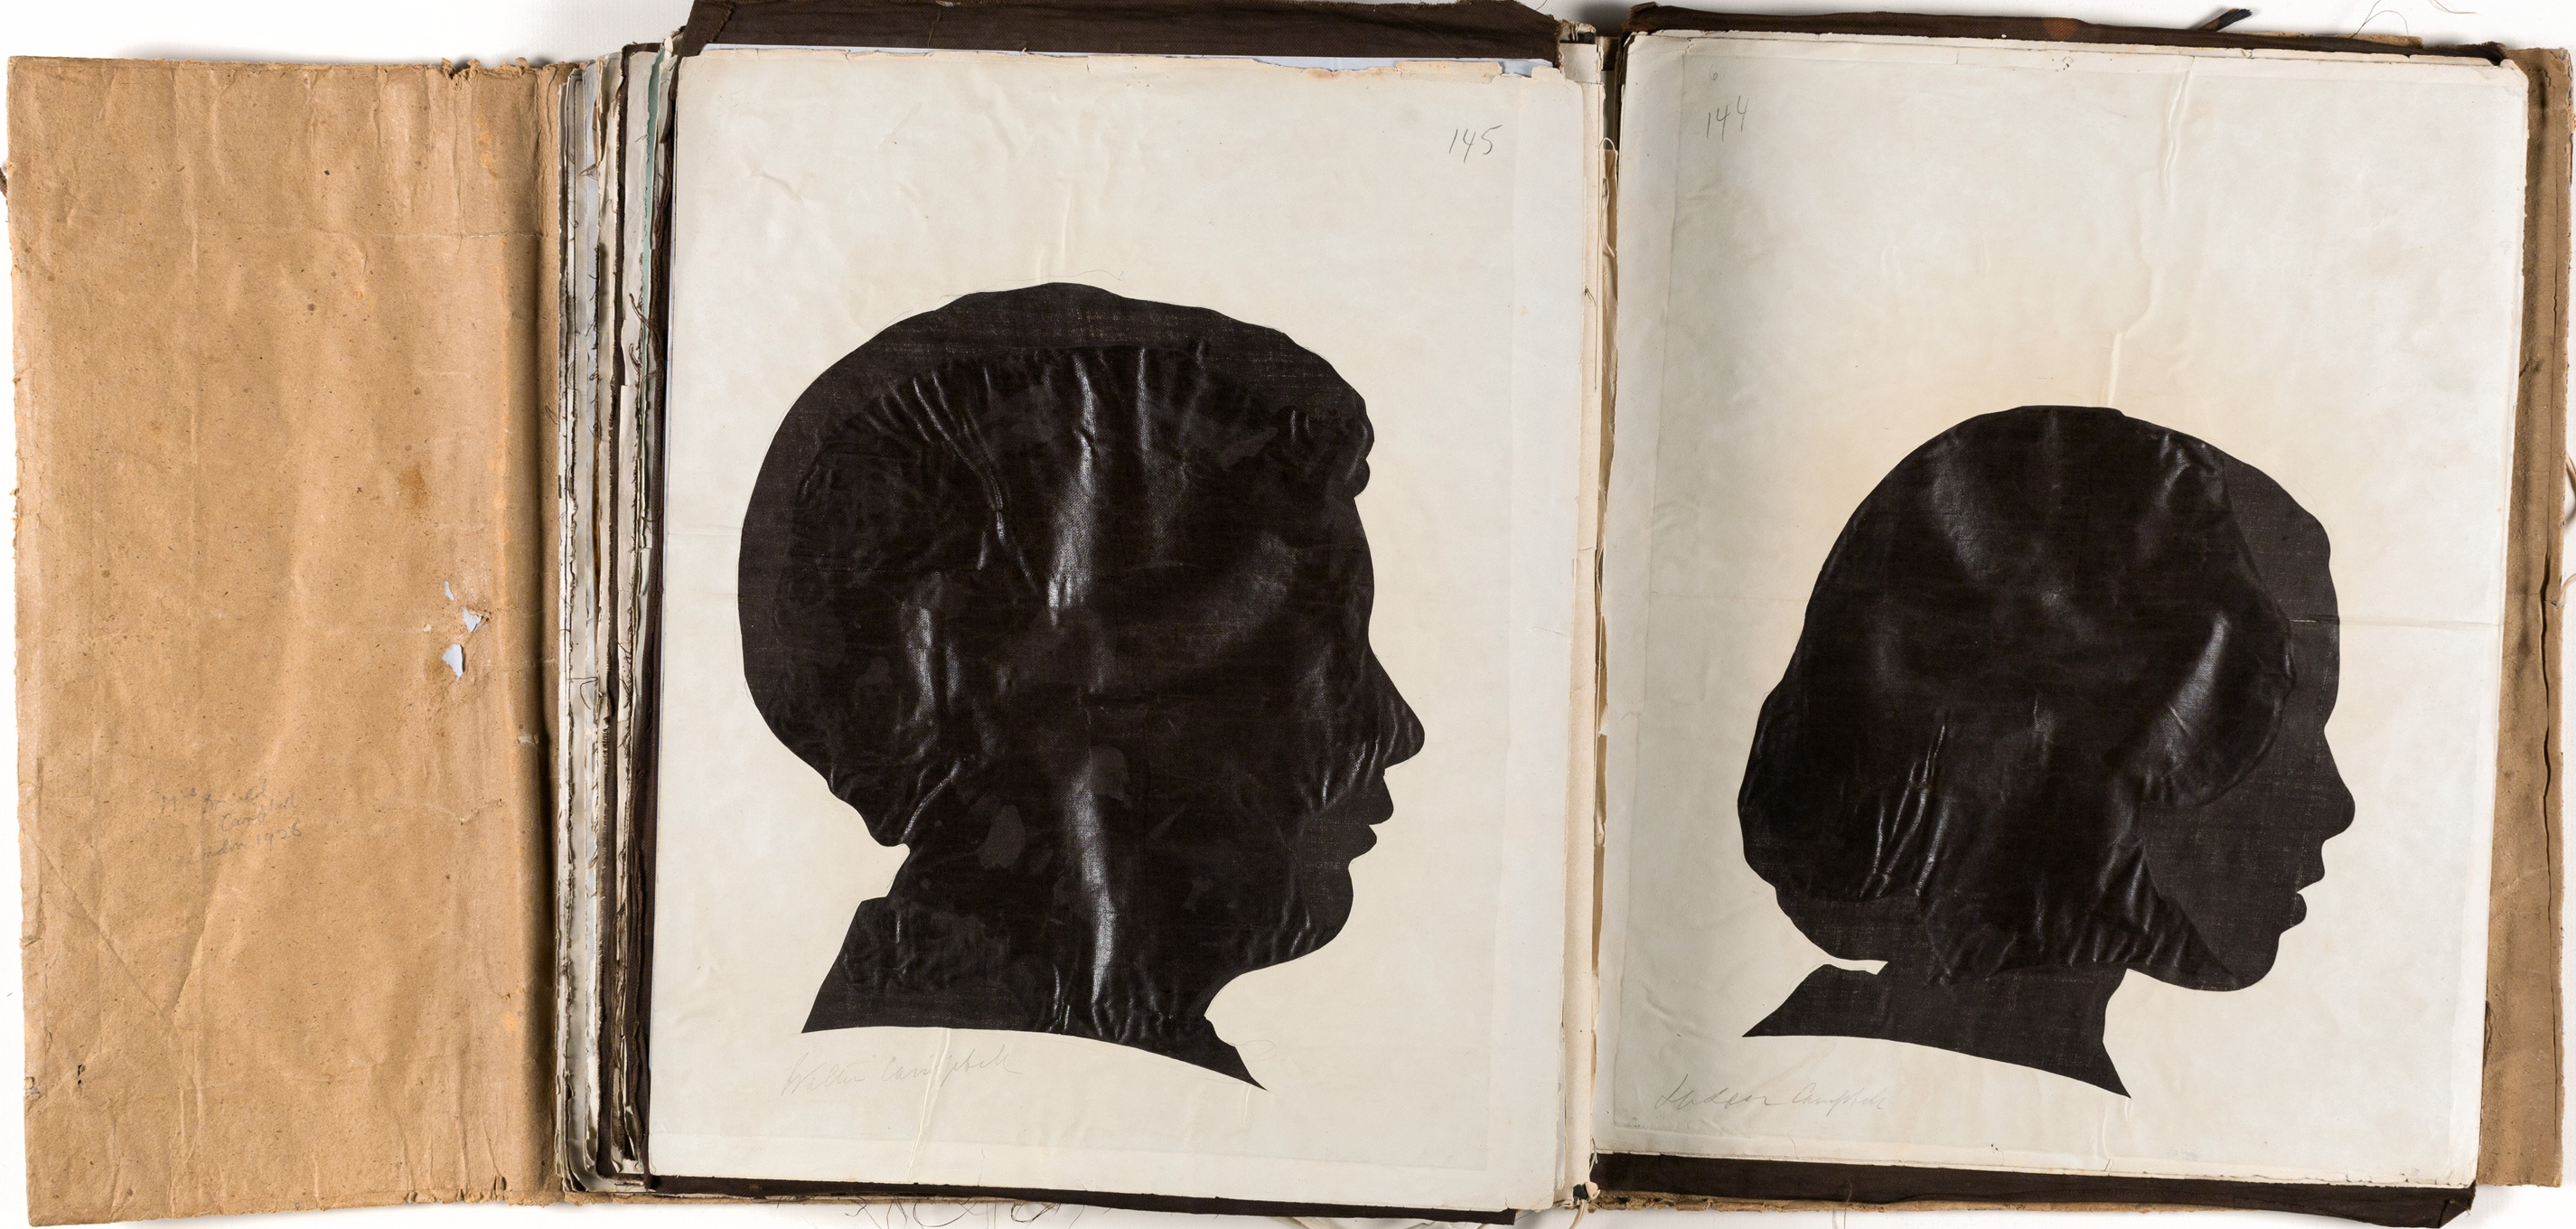 Silhouette likenesses of (left) Walter Campbell (1838-1860) and (right) Susan Campbell (1843-1930) / by Marianne Collinson Close